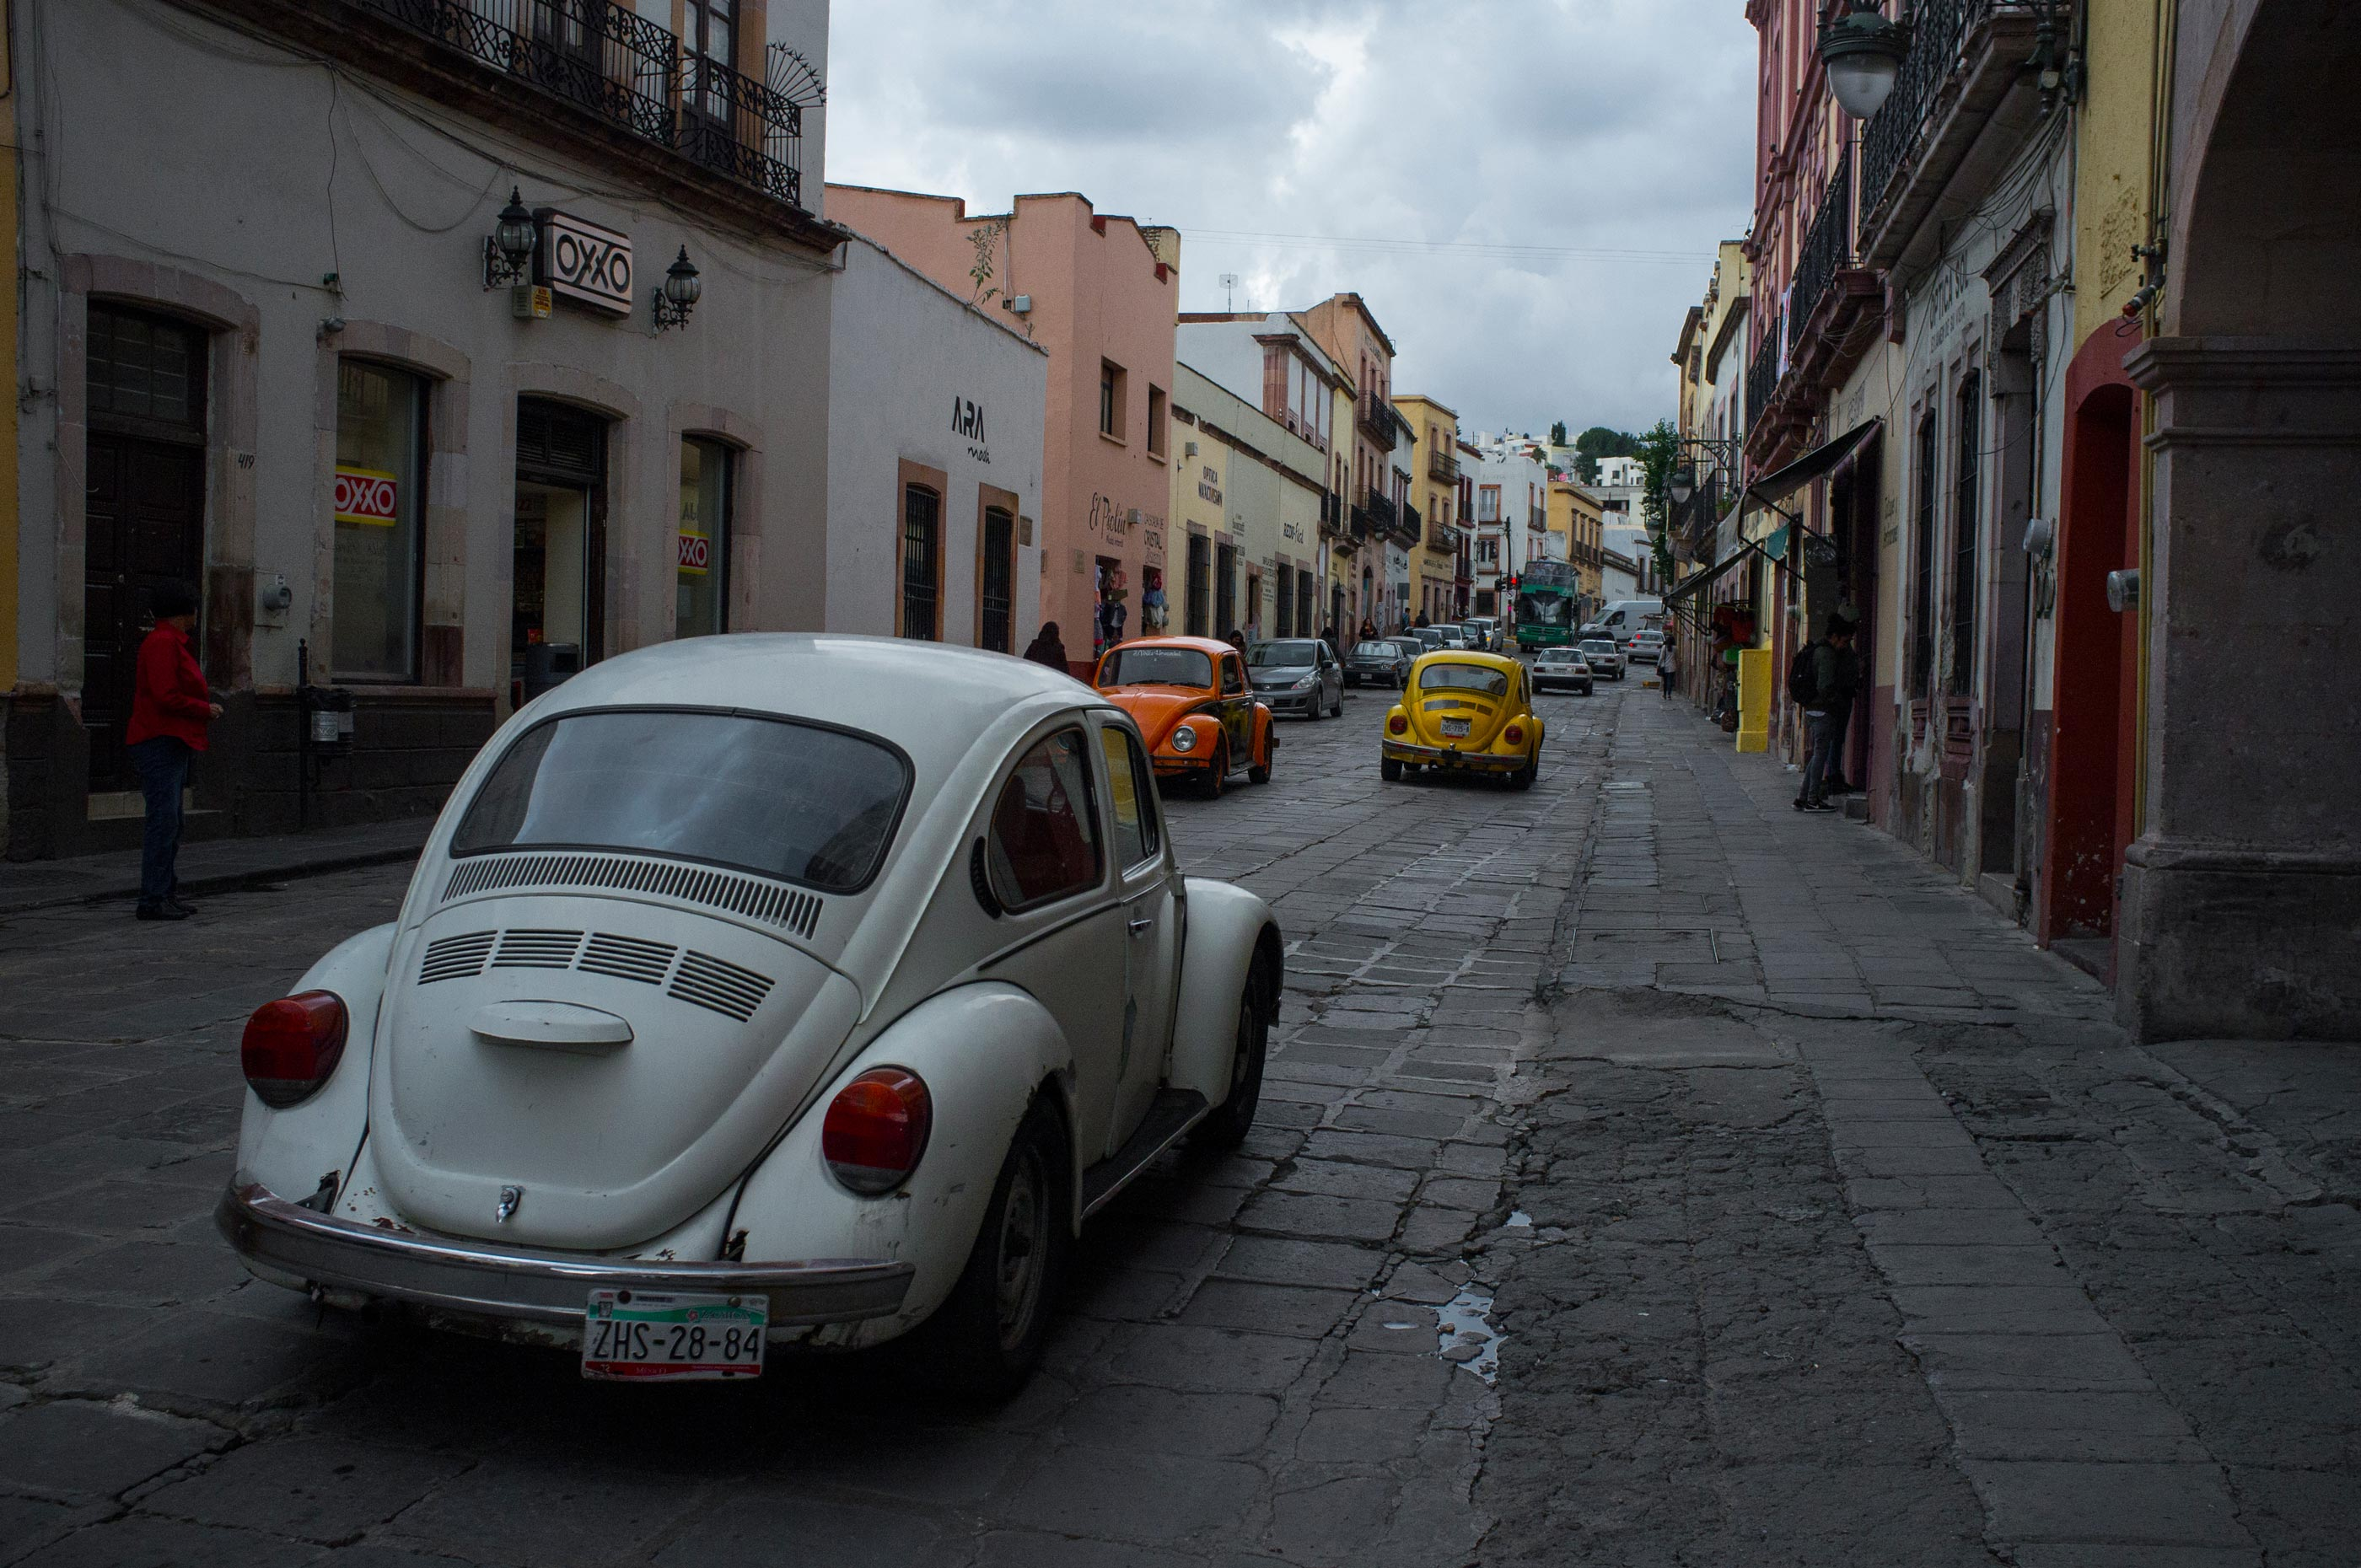 White, yellow and orange VW Beetle cars drive down a cobbled street.